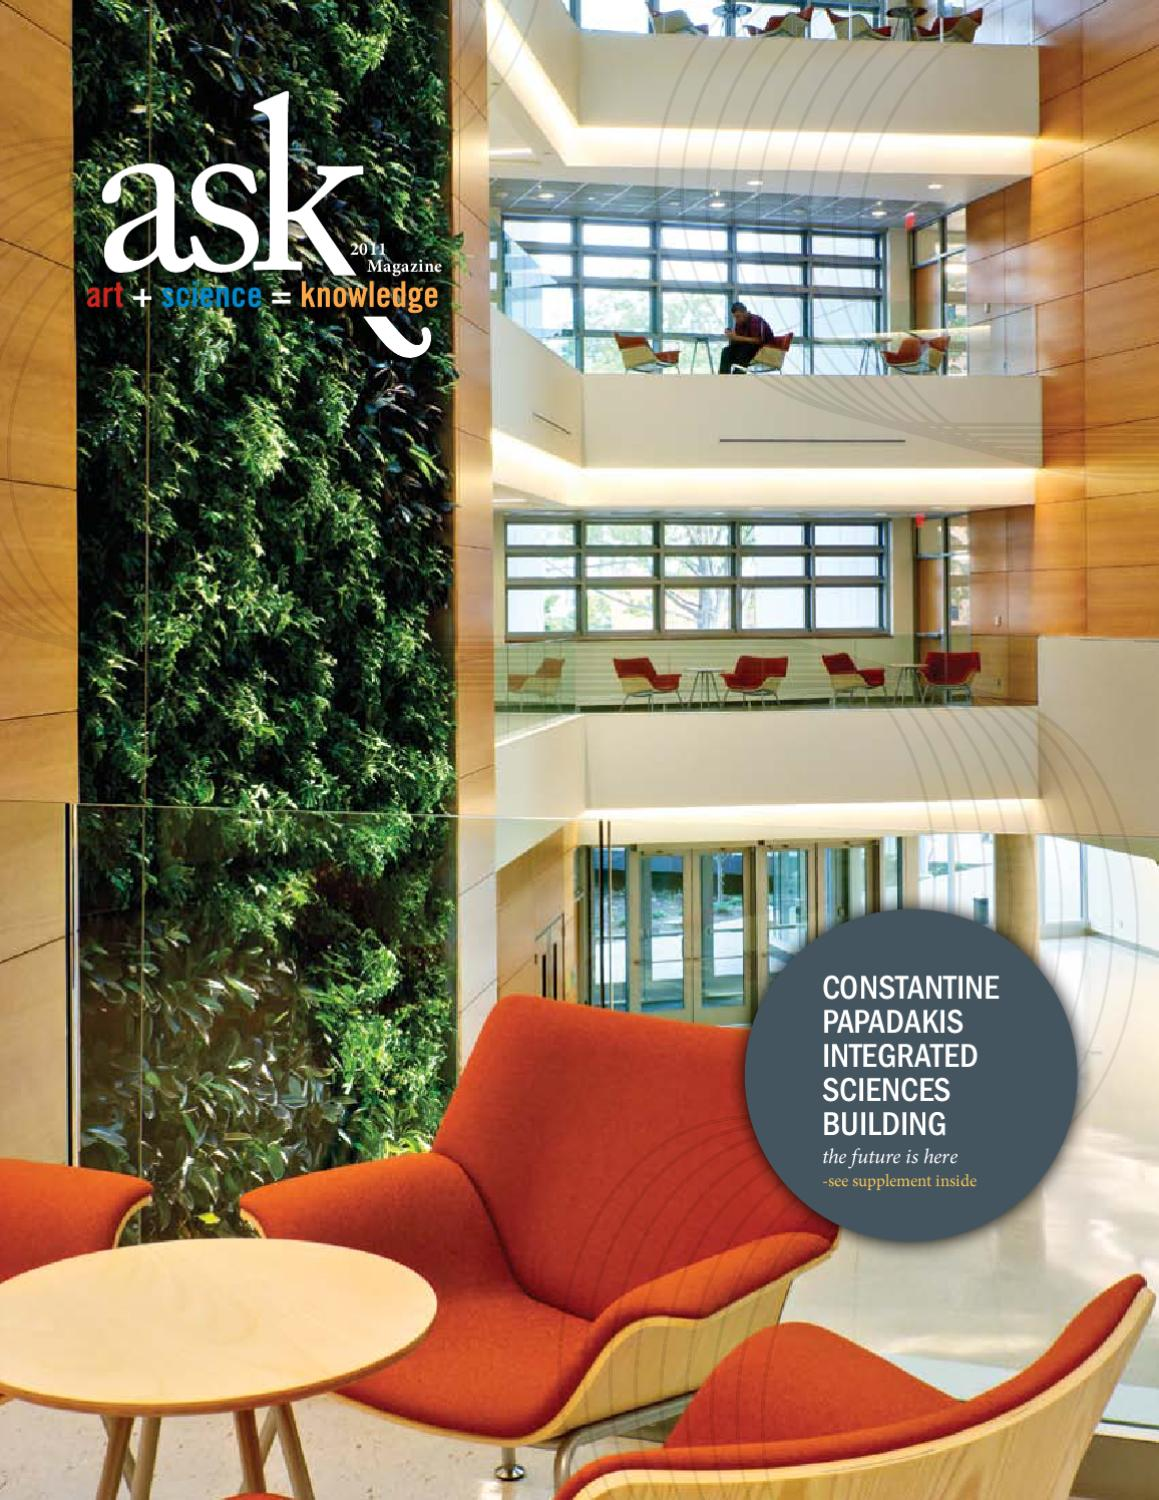 Ask Magazine 2011 By Amy Weaver Issuu Electric Circuit Diagram Of A House Schoolphysics Welcome